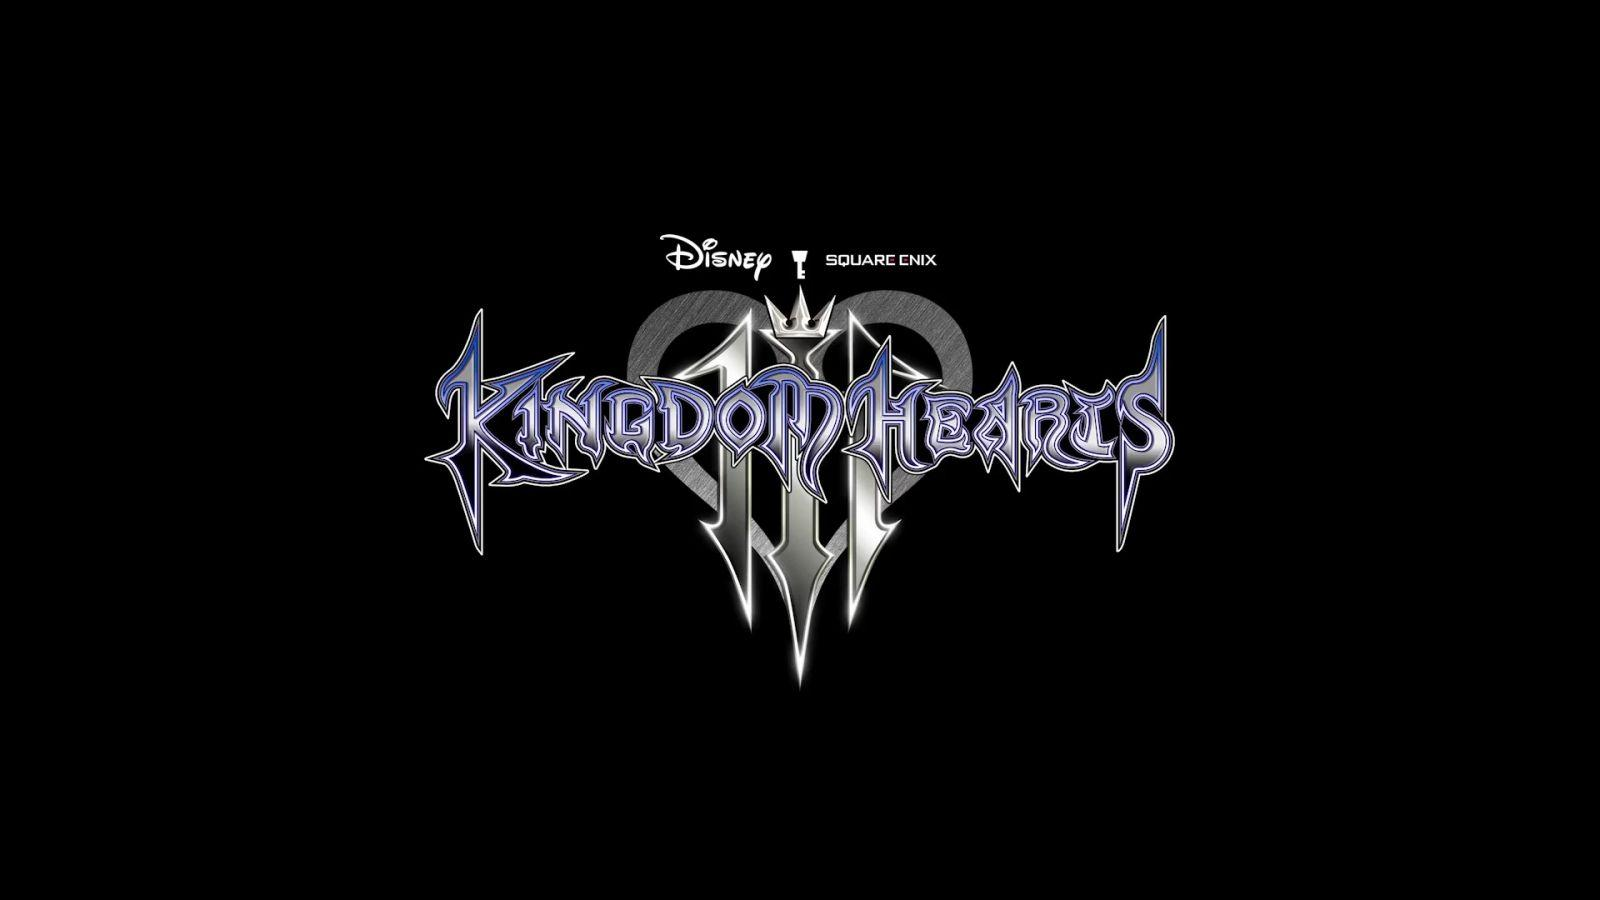 KINGDOM HEARTS III - CLASSIC KINGDOM Trailer 1712.jpg